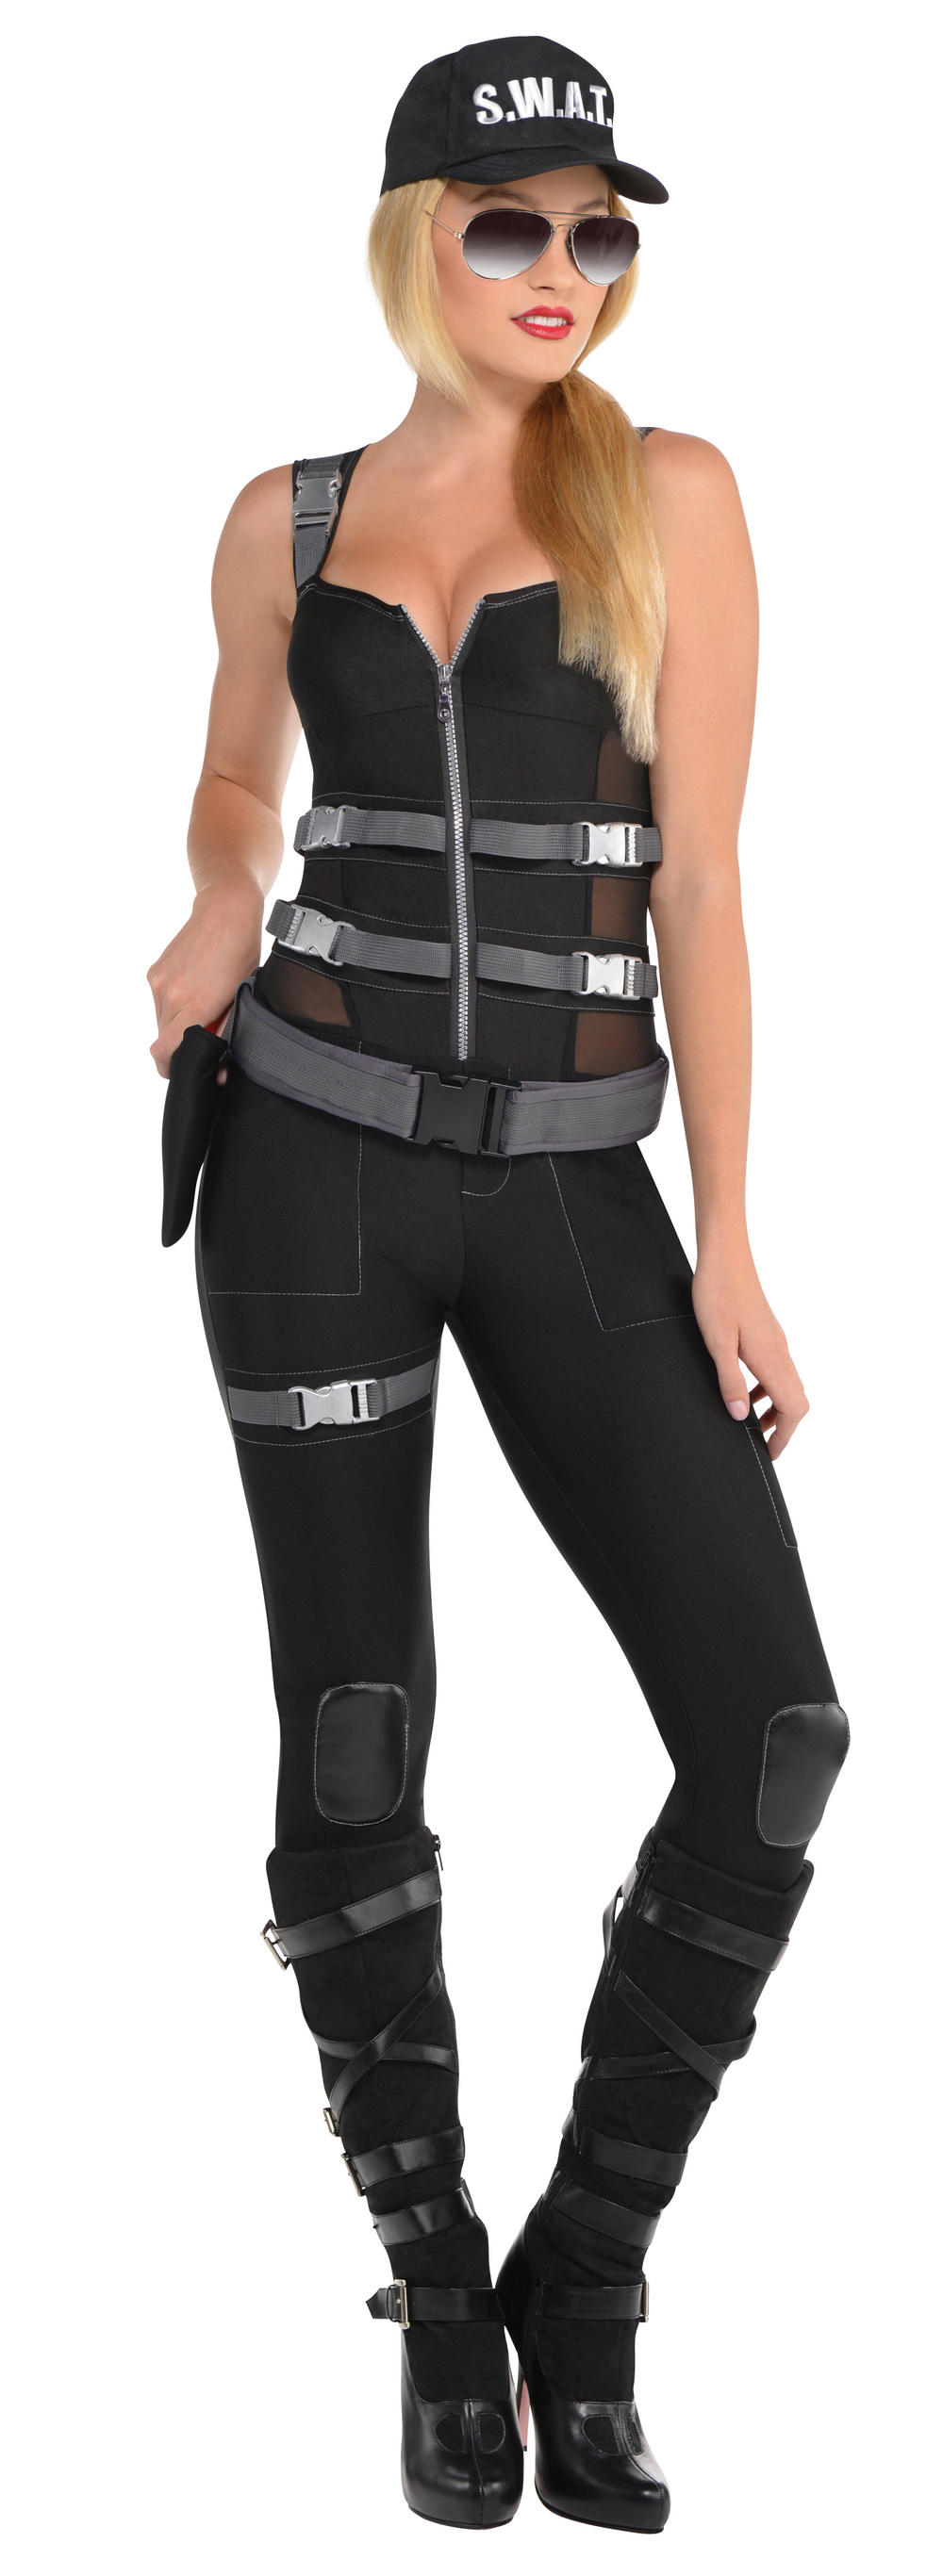 Armed & Dangerous Ladies Costume